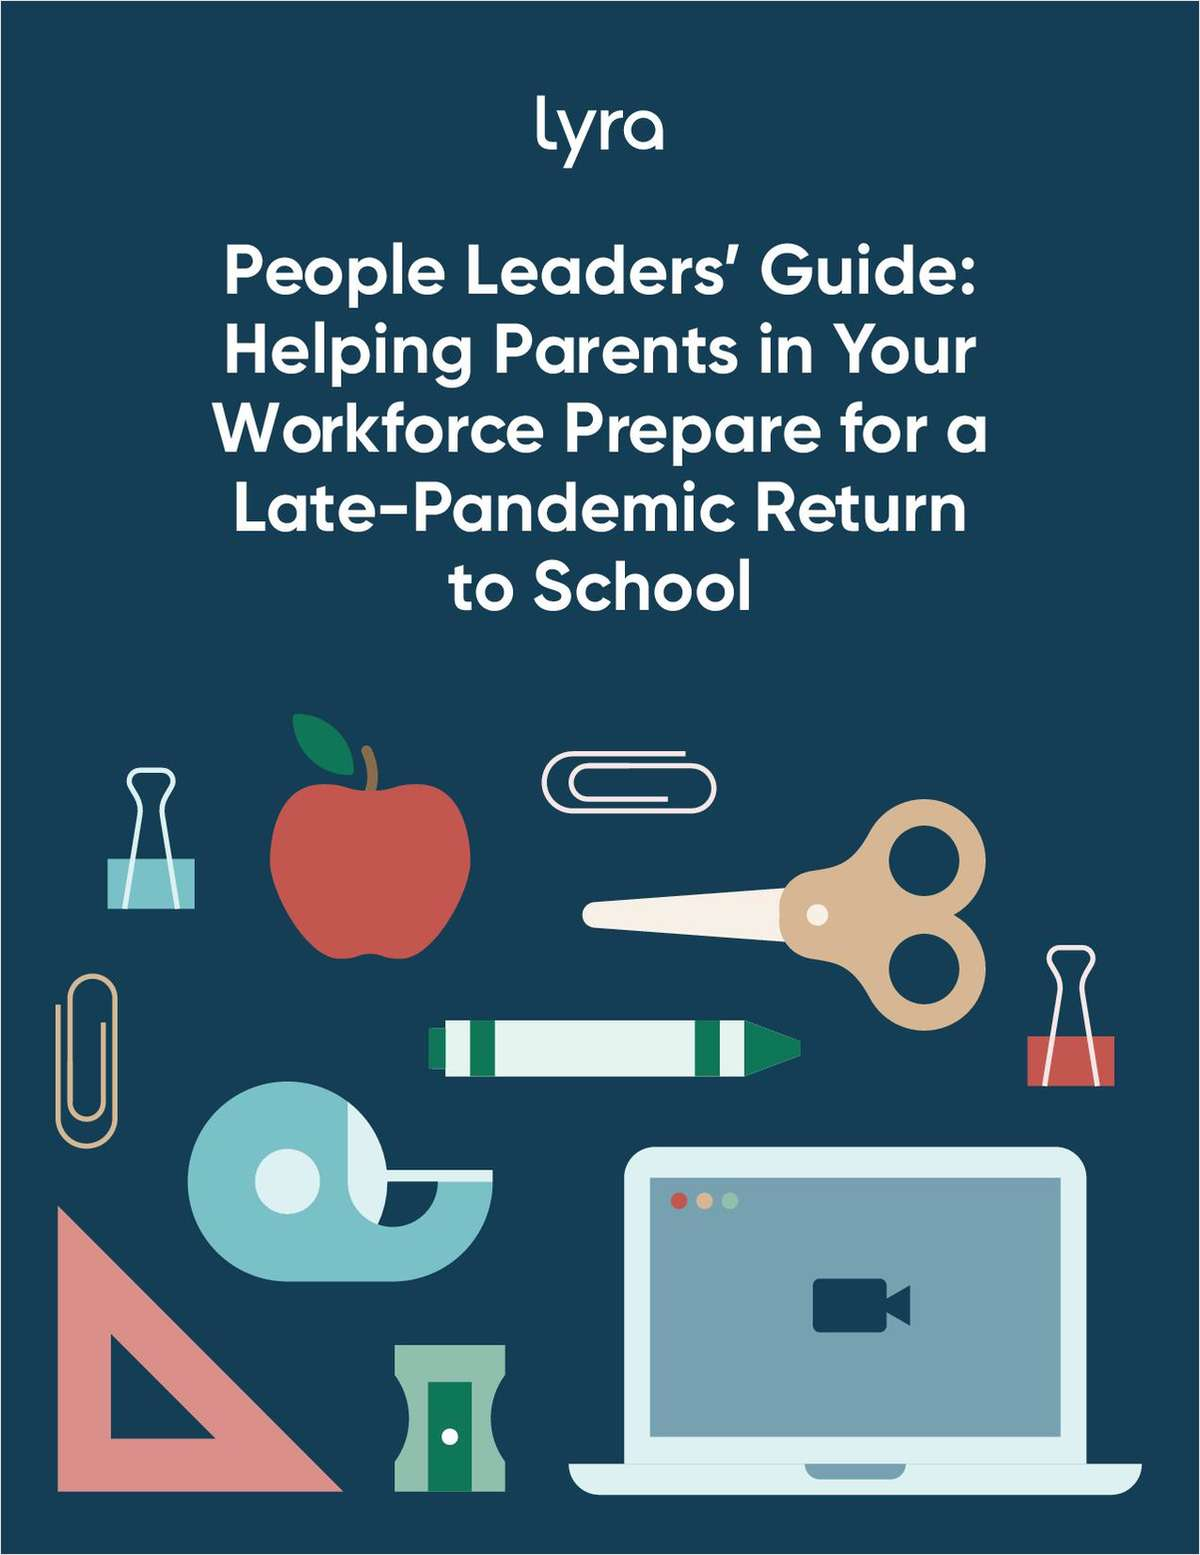 Leader's Guide: Helping Parents Prepare for a Late-Pandemic Return to School